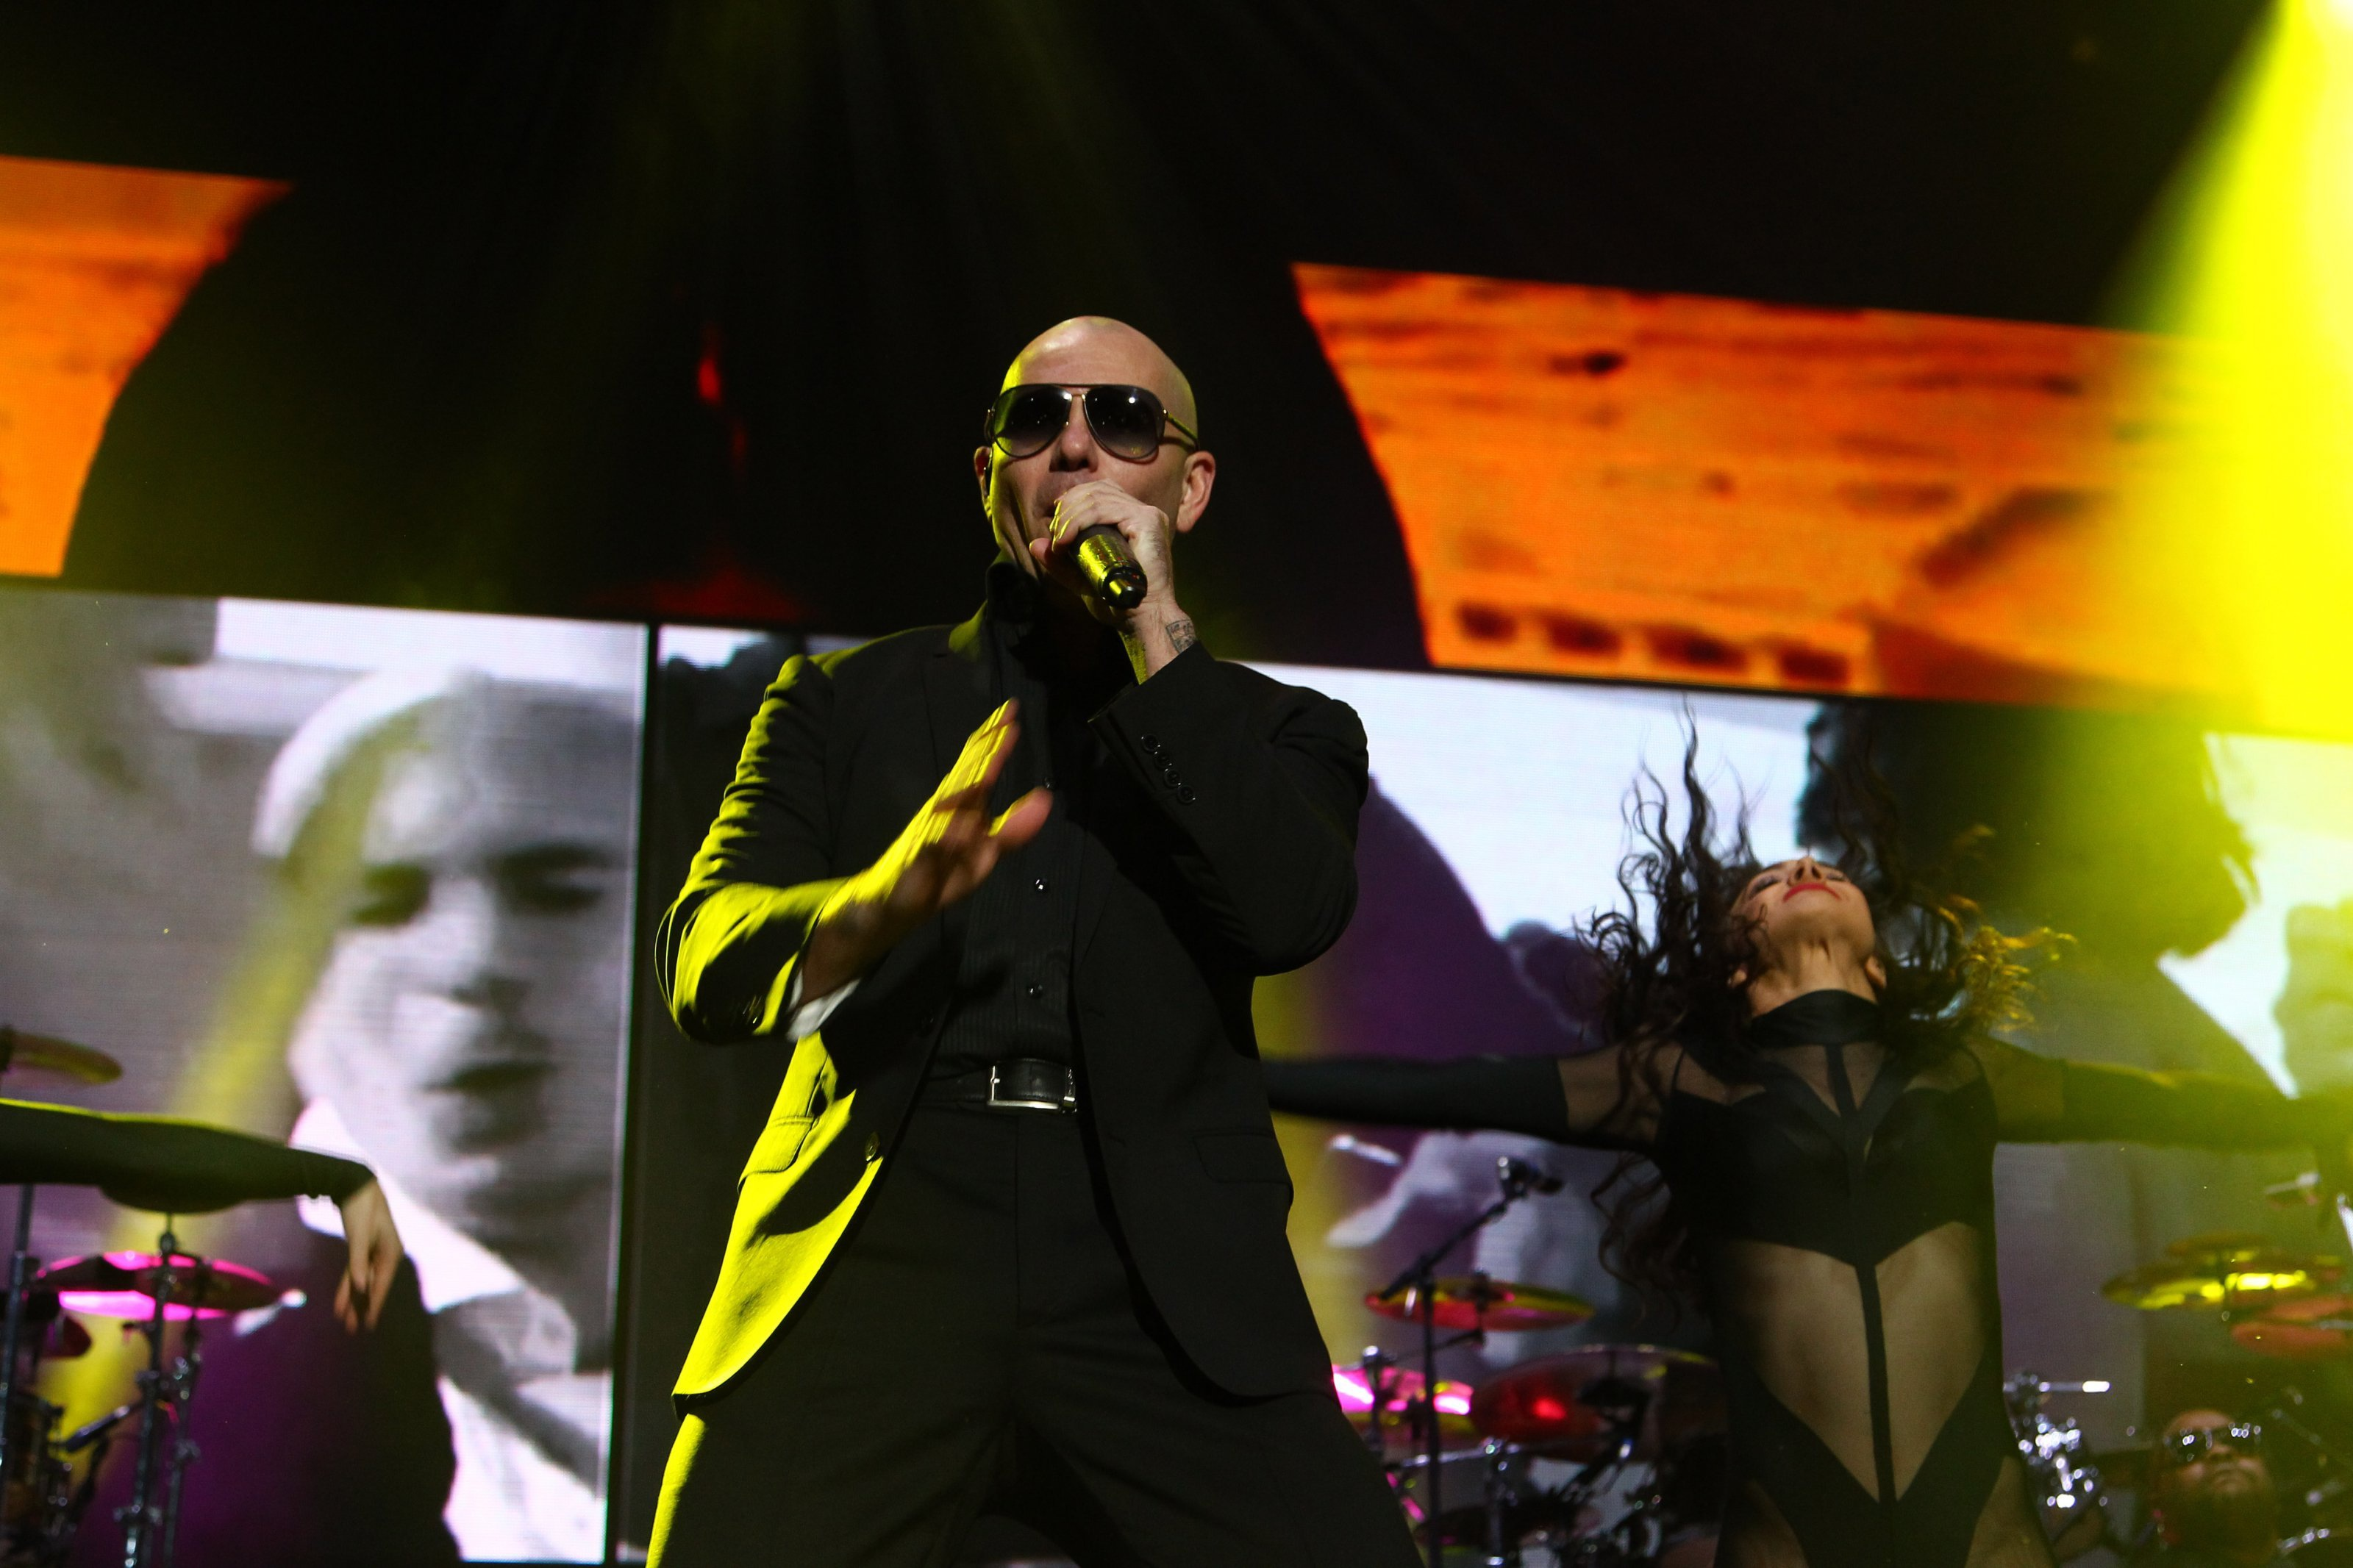 MEXICO CITY, MEXICO - DECEMBER 03:  Singer Pitbull performs during his show at Sports Palace on December 03, 2014 in Mexico C